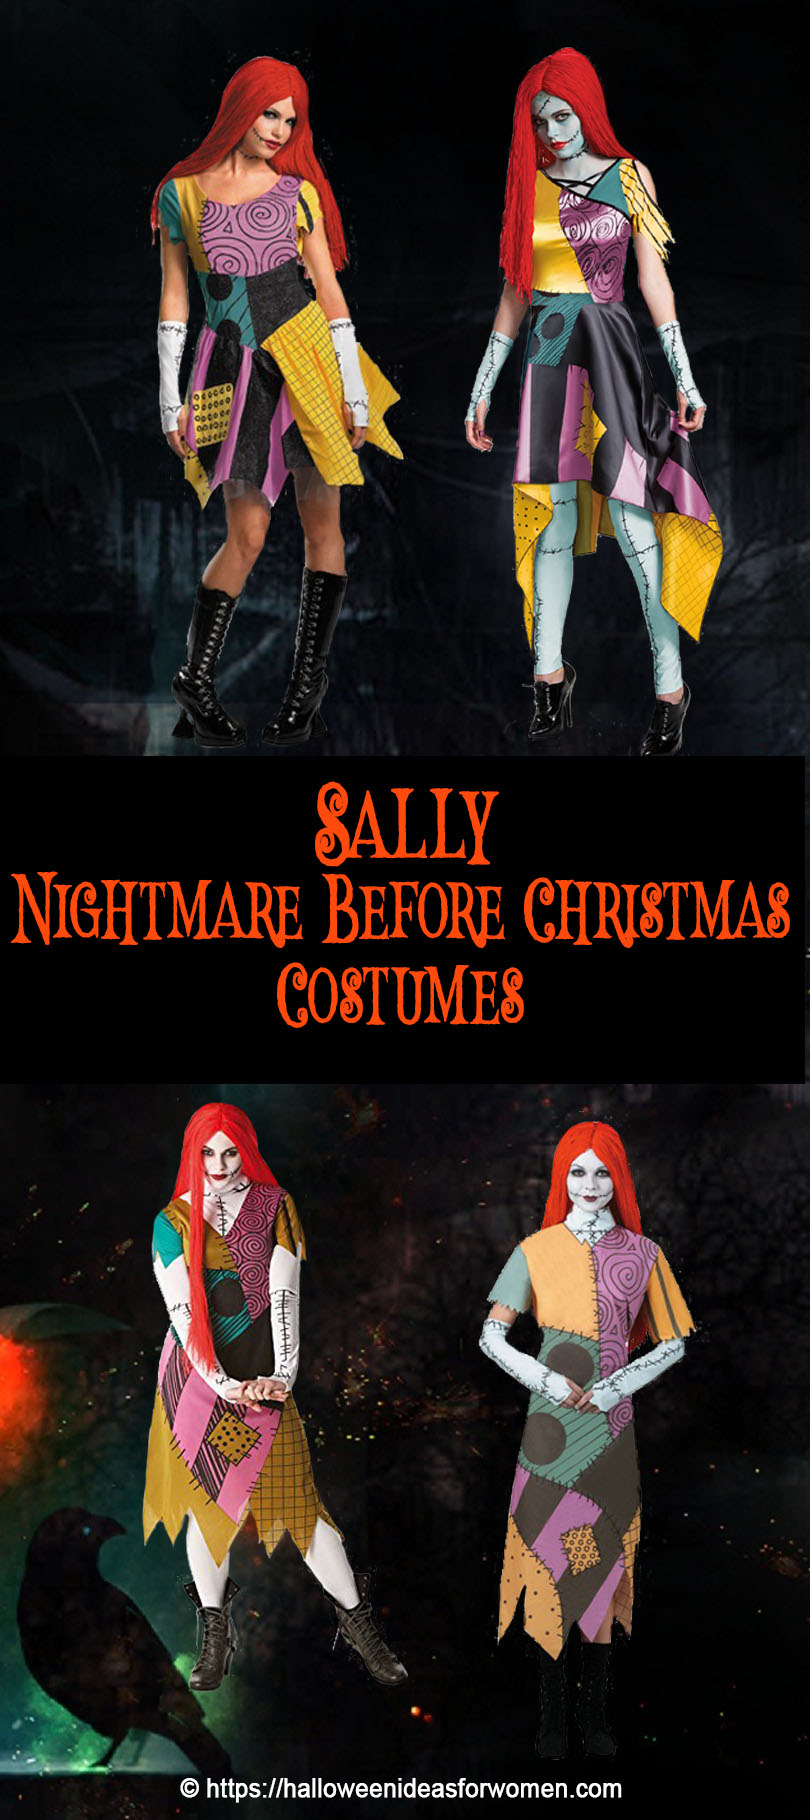 Sally Nightmare Before Christmas Costumes and Sally Makeup Tutorials